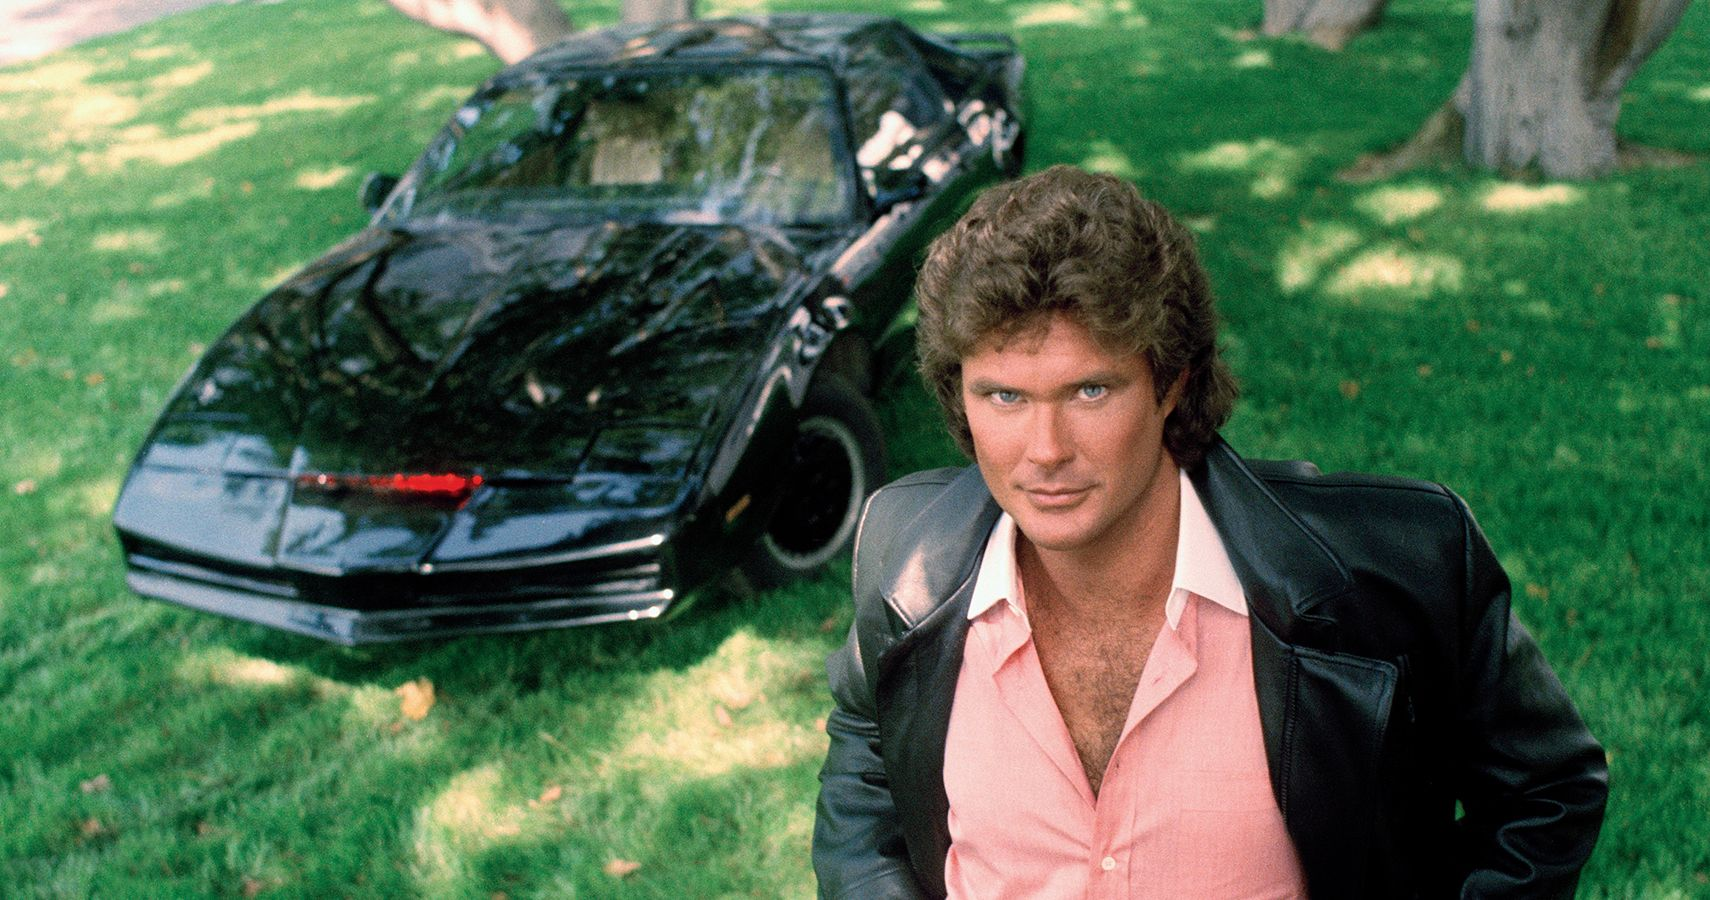 Here's Where The Original Knight Rider Pontiac Trans Am Is Today